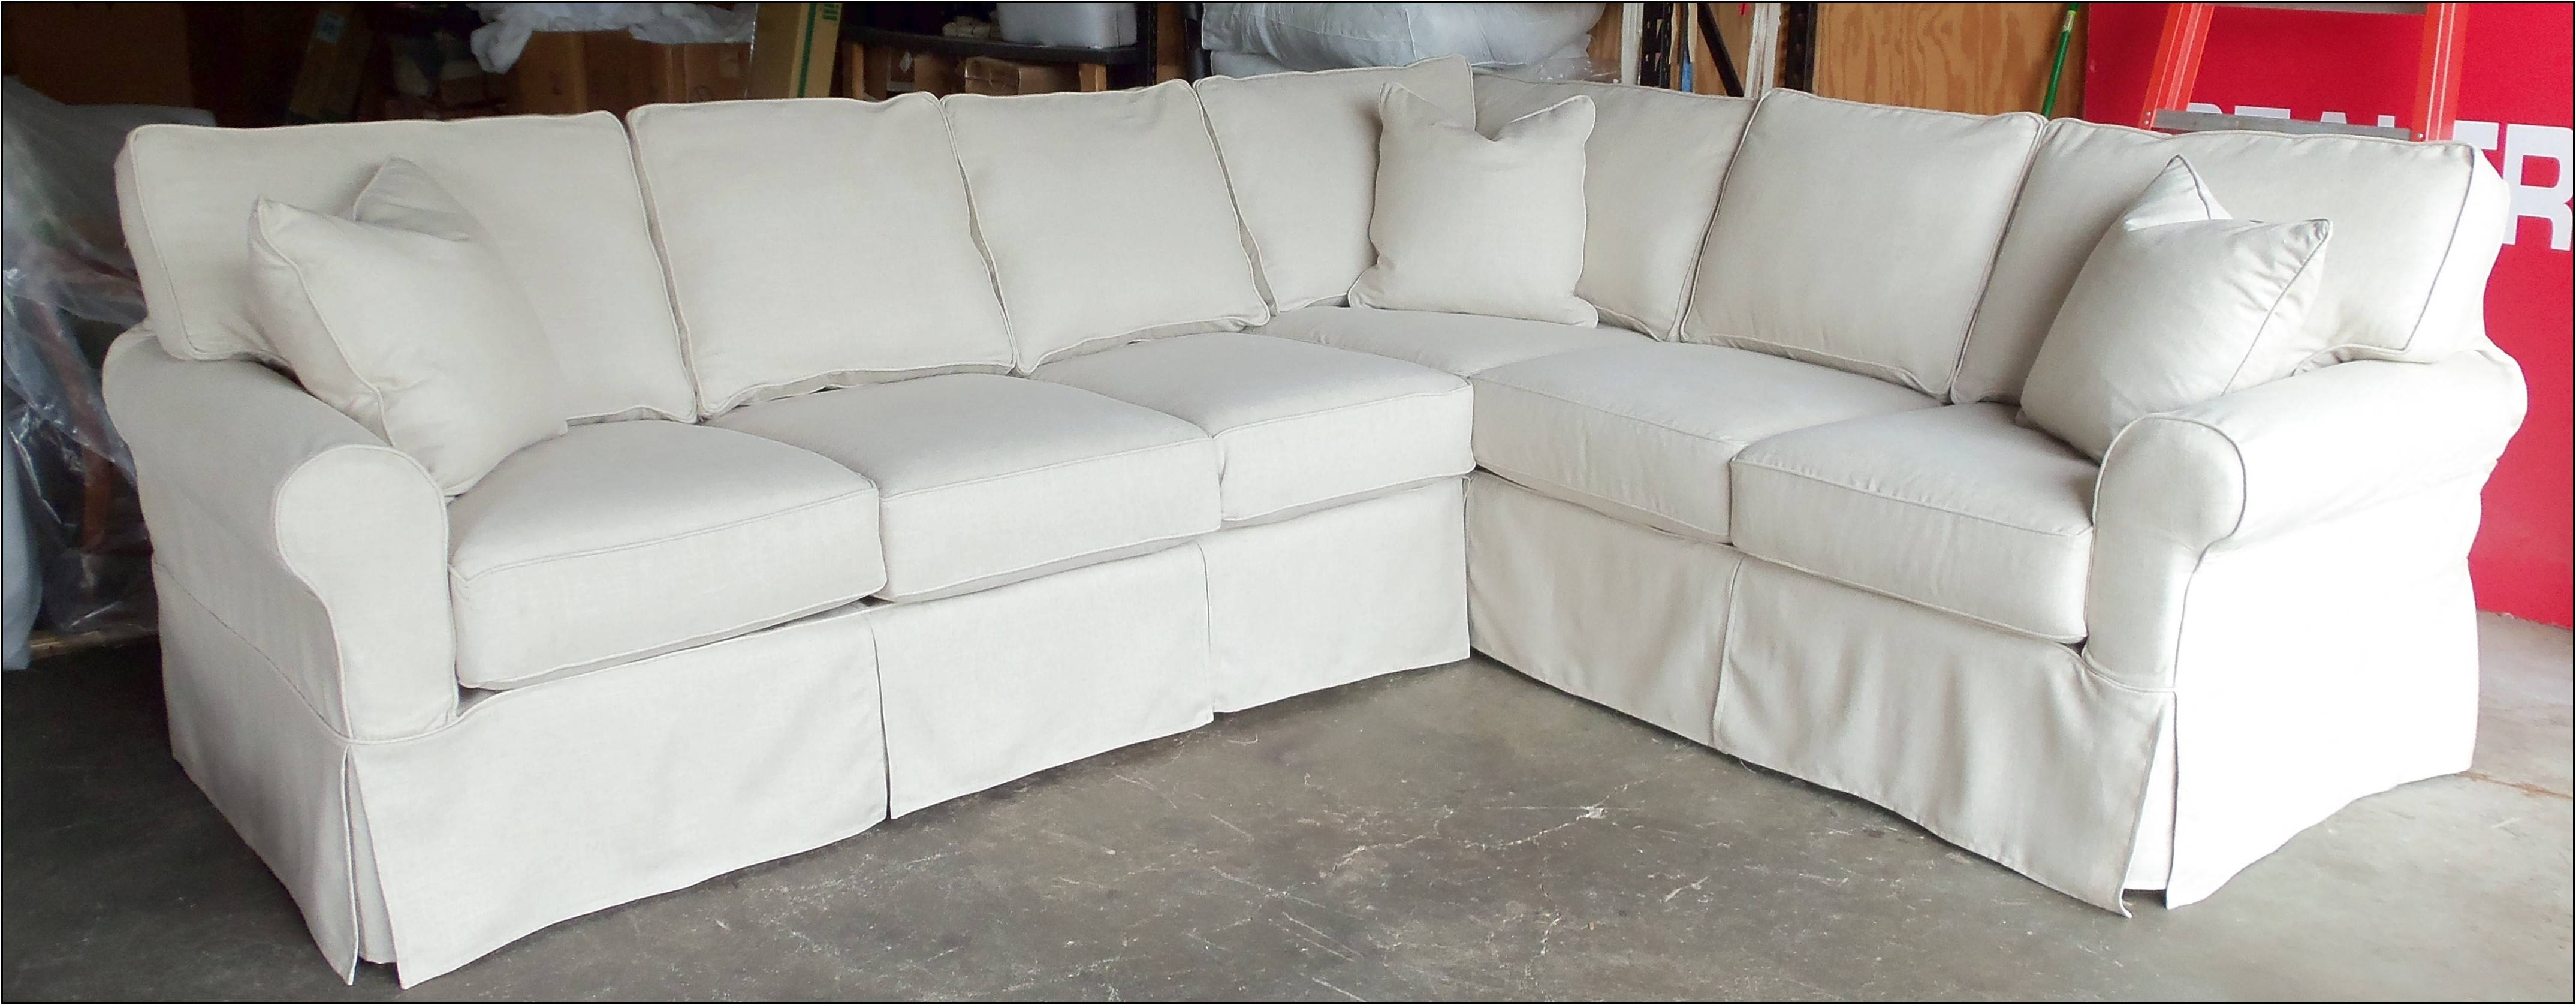 Decor: Pottery Barn Slipcovers | Pottery Barn Glider Slipcover regarding Slipcovers for Sleeper Sofas (Image 4 of 15)